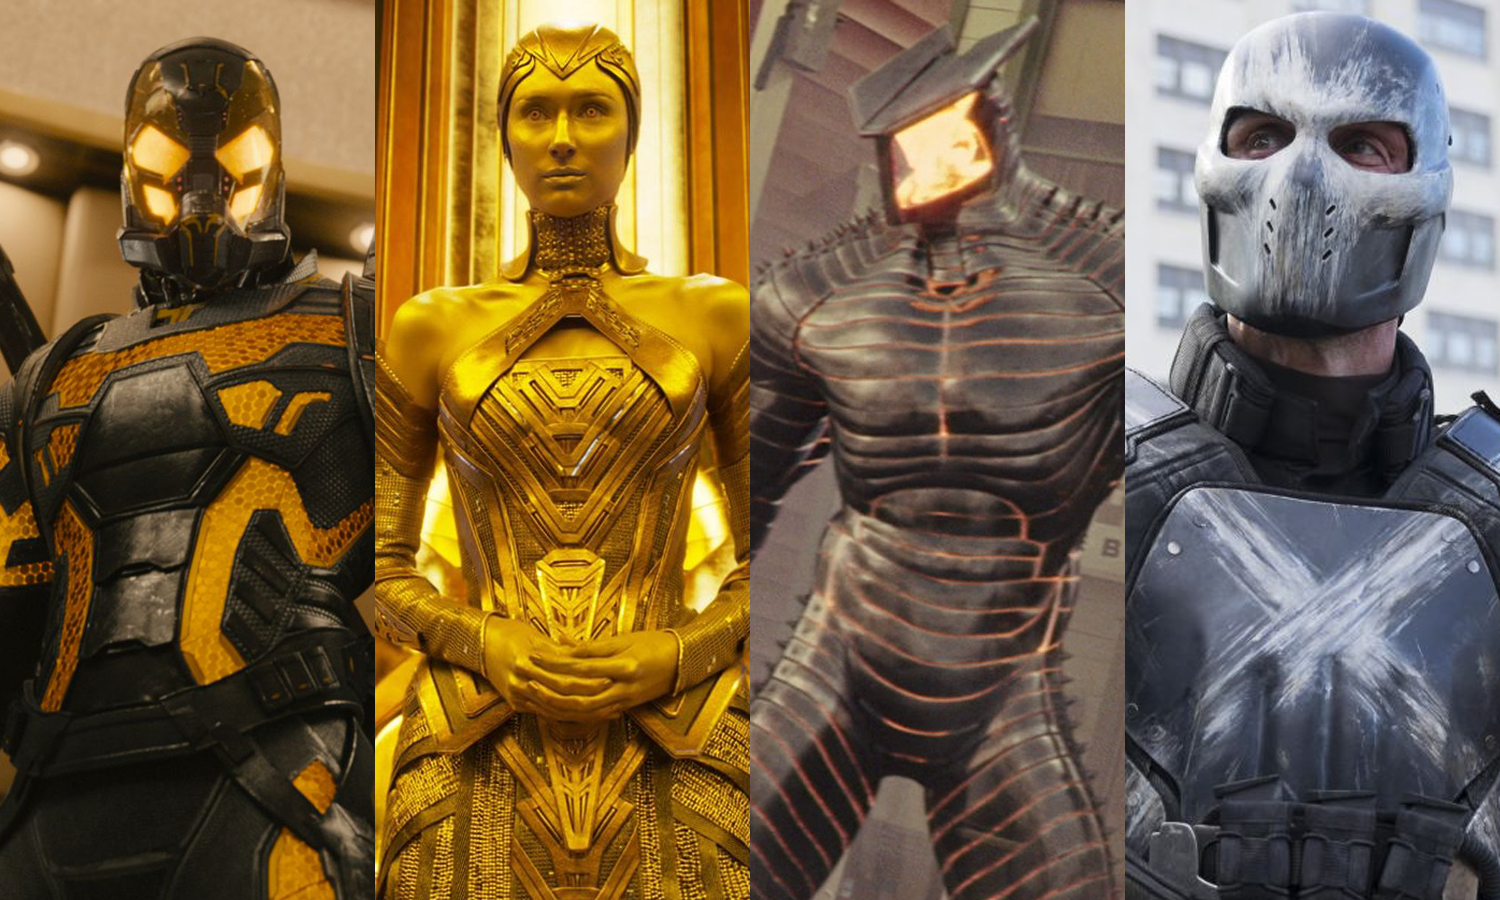 Ranking the Marvel Cinematic Universe's villains from best